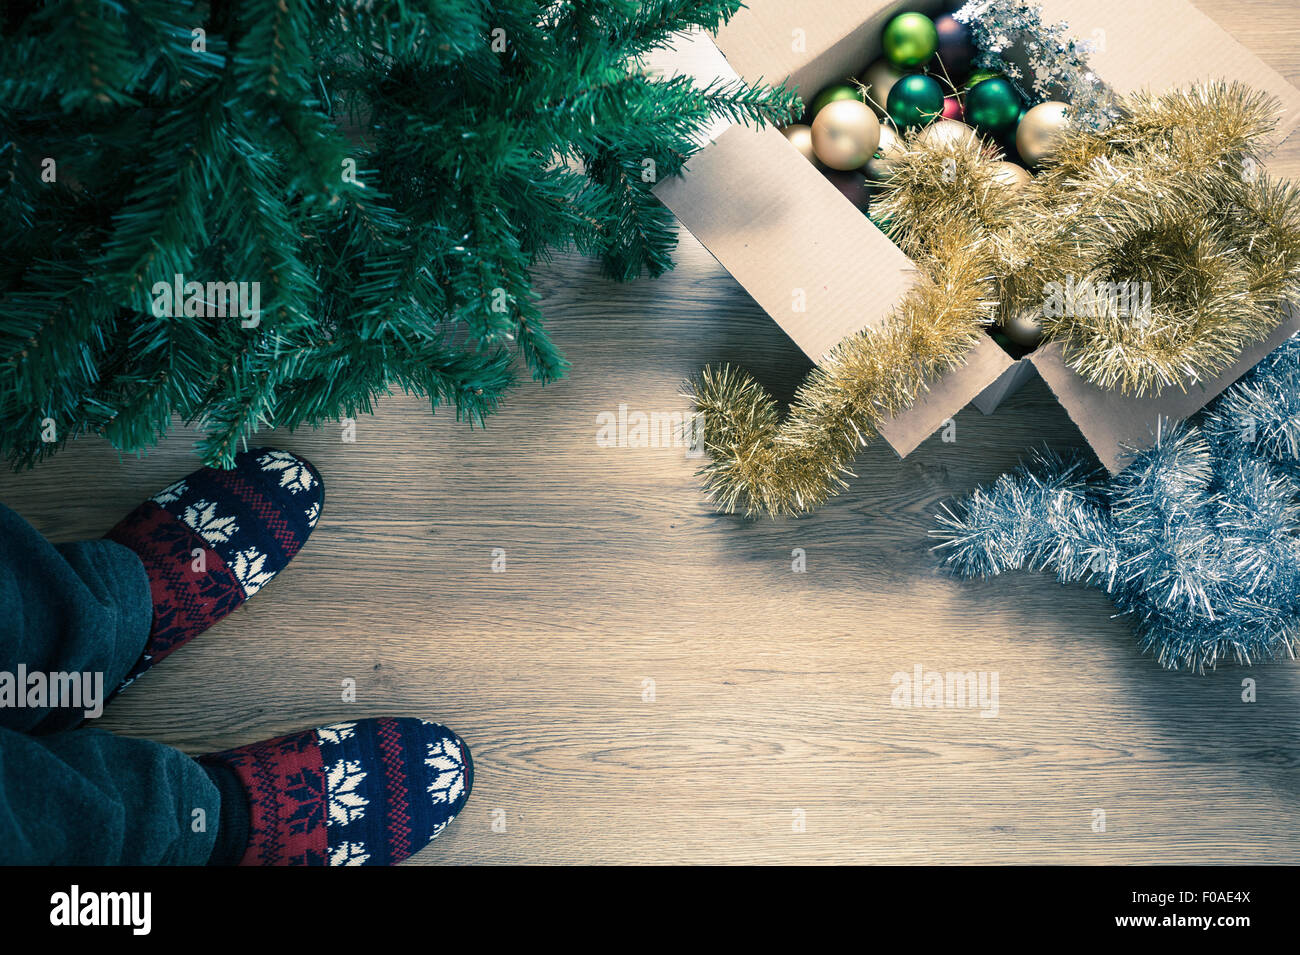 Person wearing slippers with christmas decorations, high angle Stock Photo